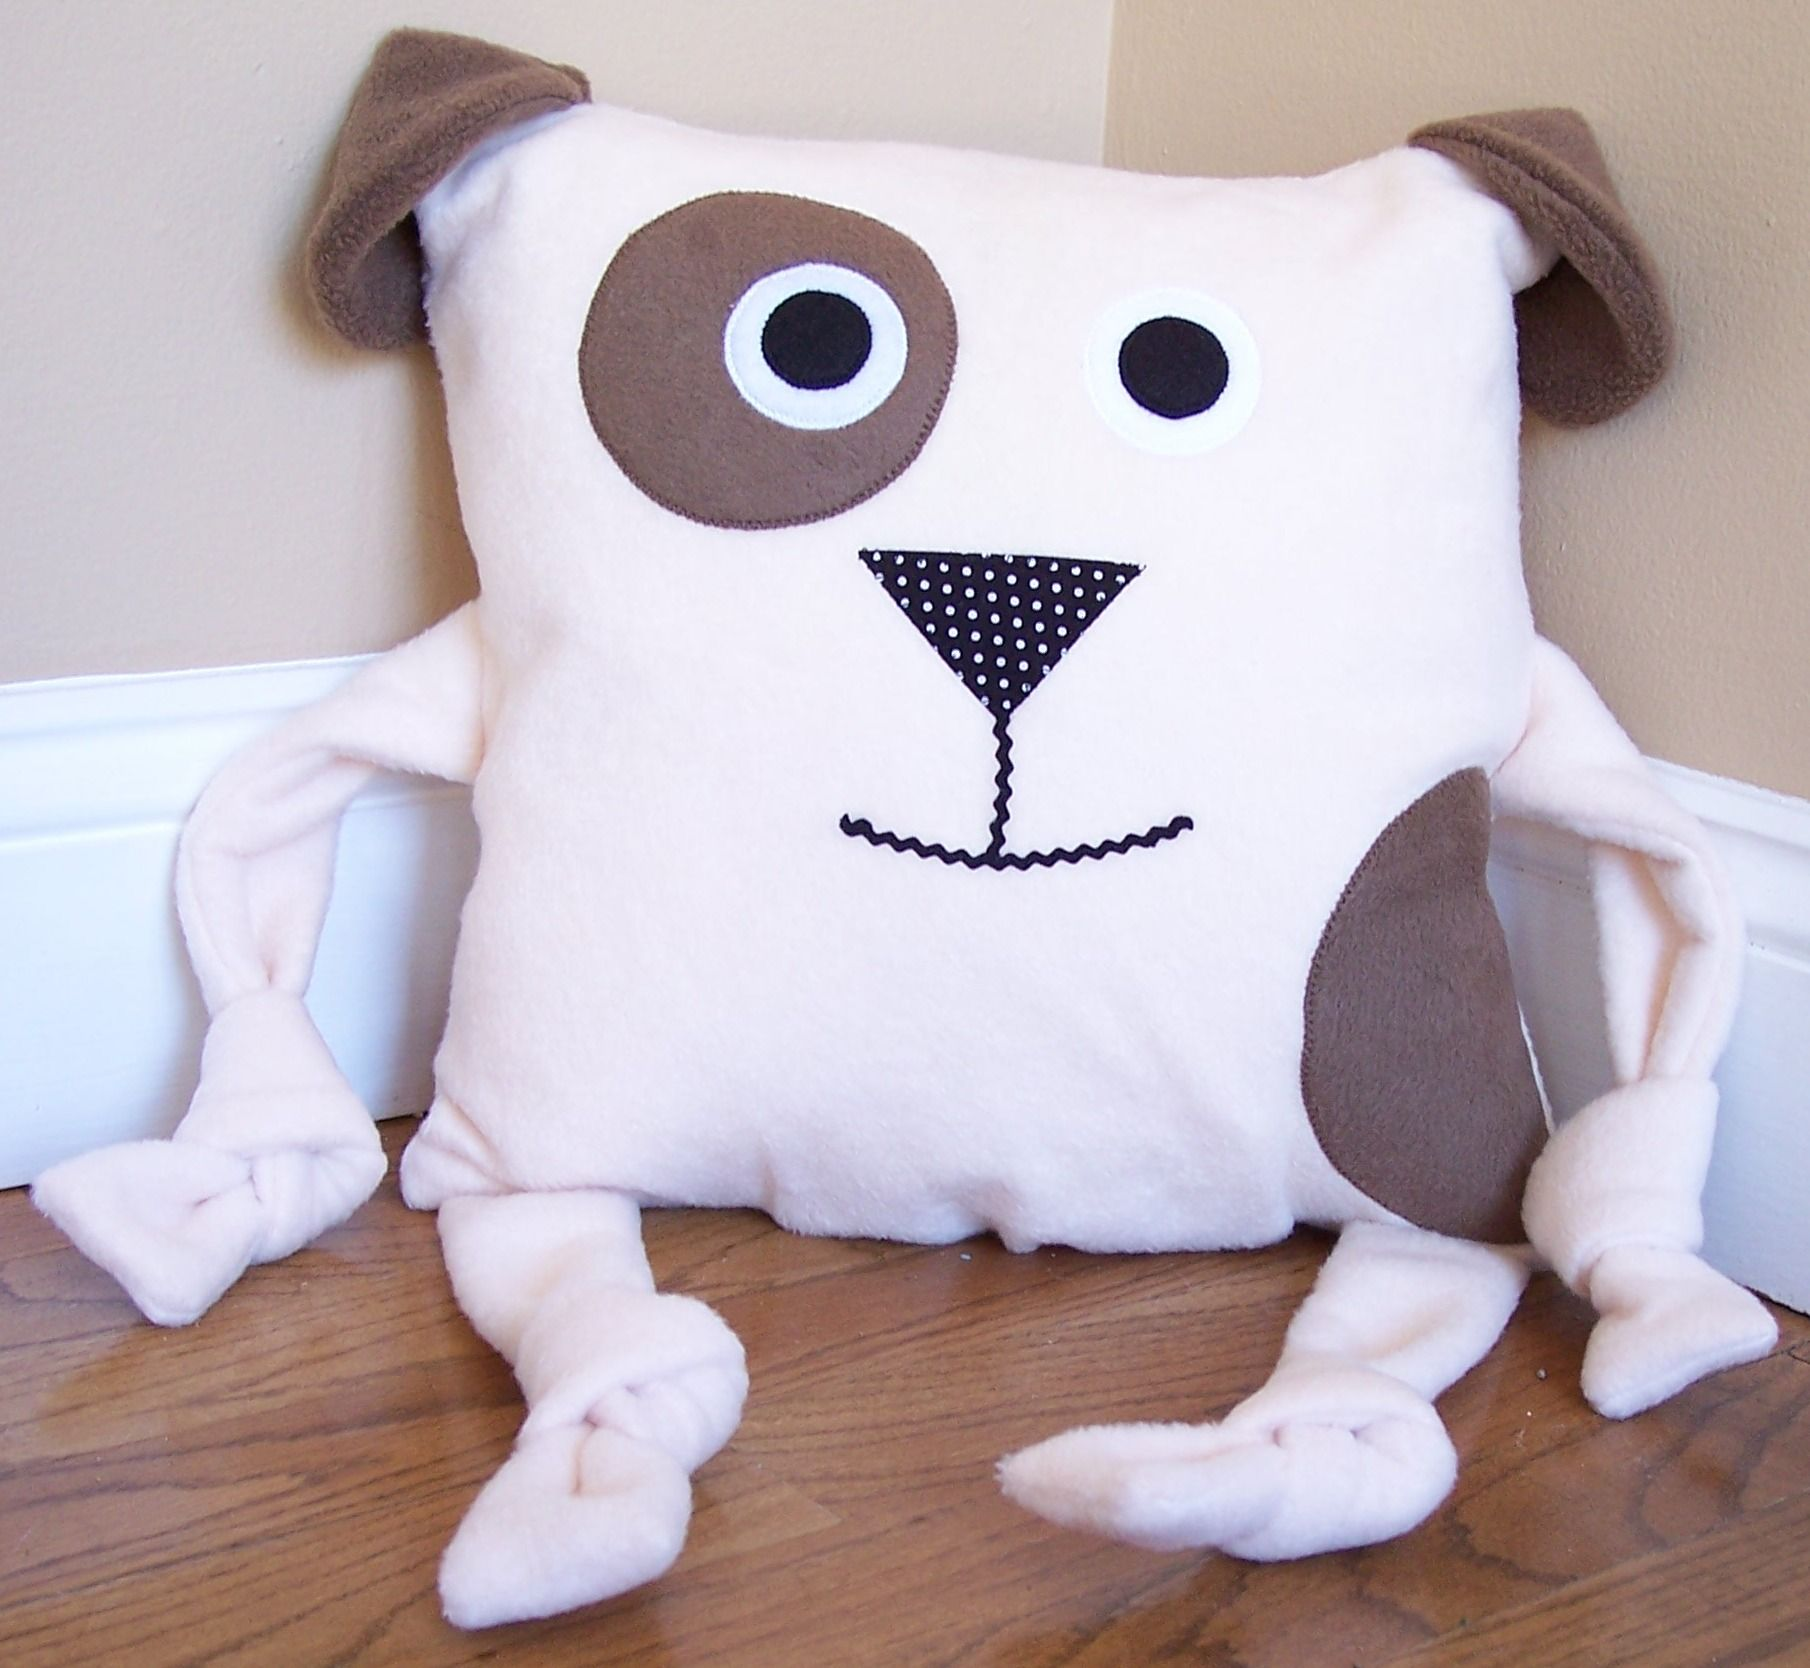 Animal Pillow Pinterest : Dog Animal Pillow from 3 Silly Monkeys on Etsy. 14 x 14 pillow made from soft fleece. $20.00 ...